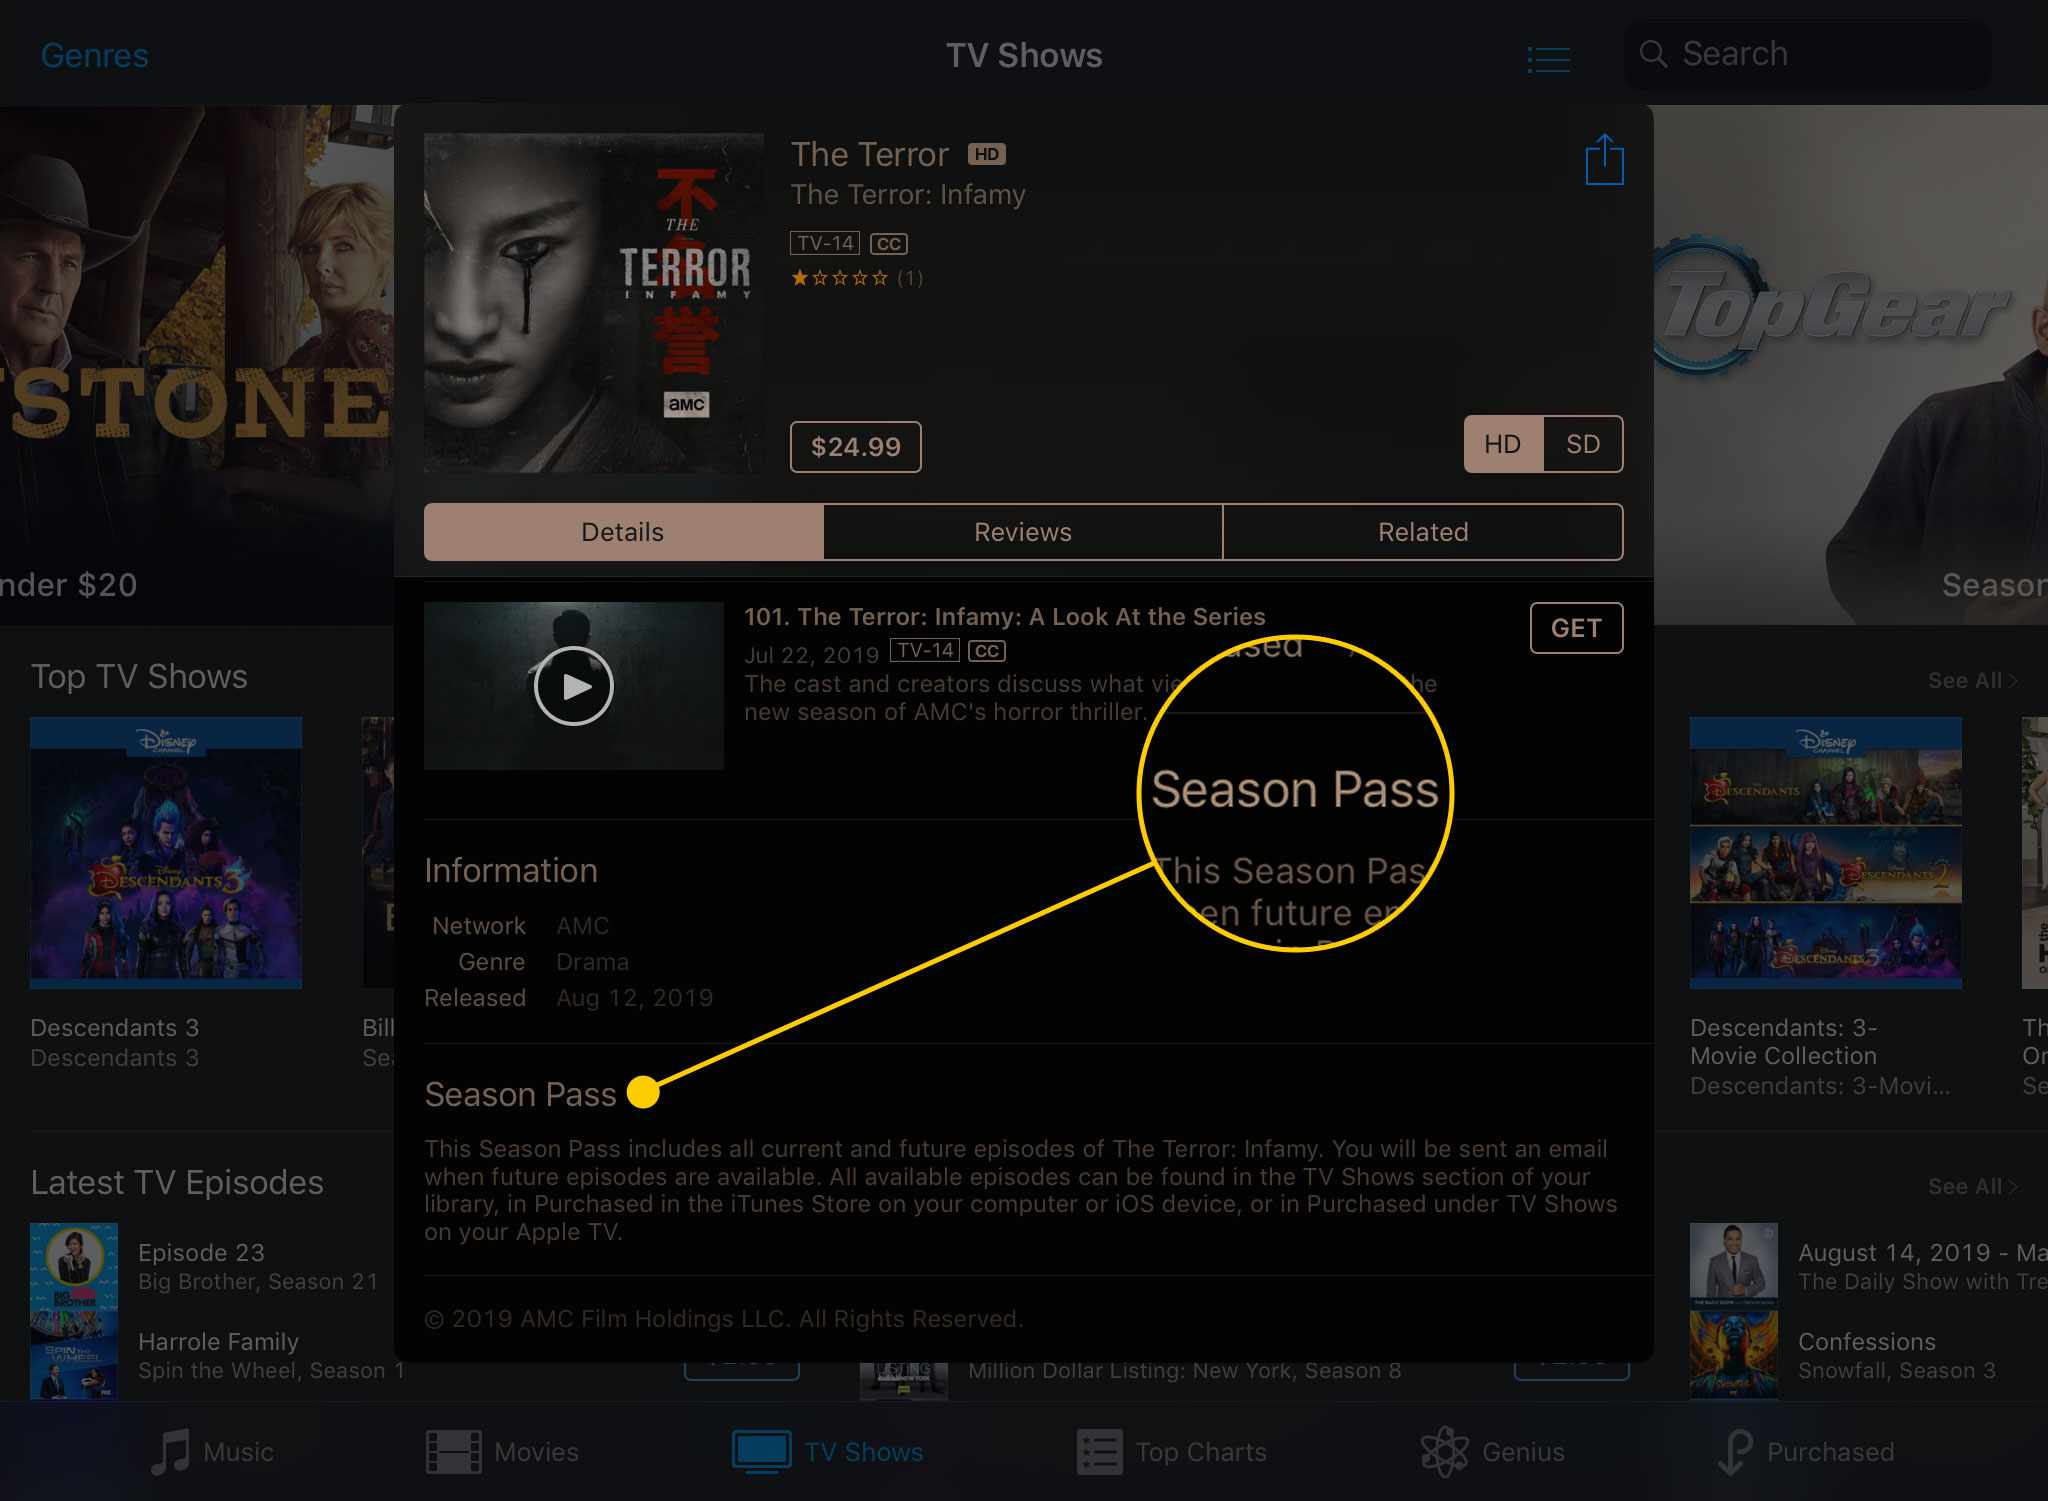 A TV show's page in the iTunes Store app with the